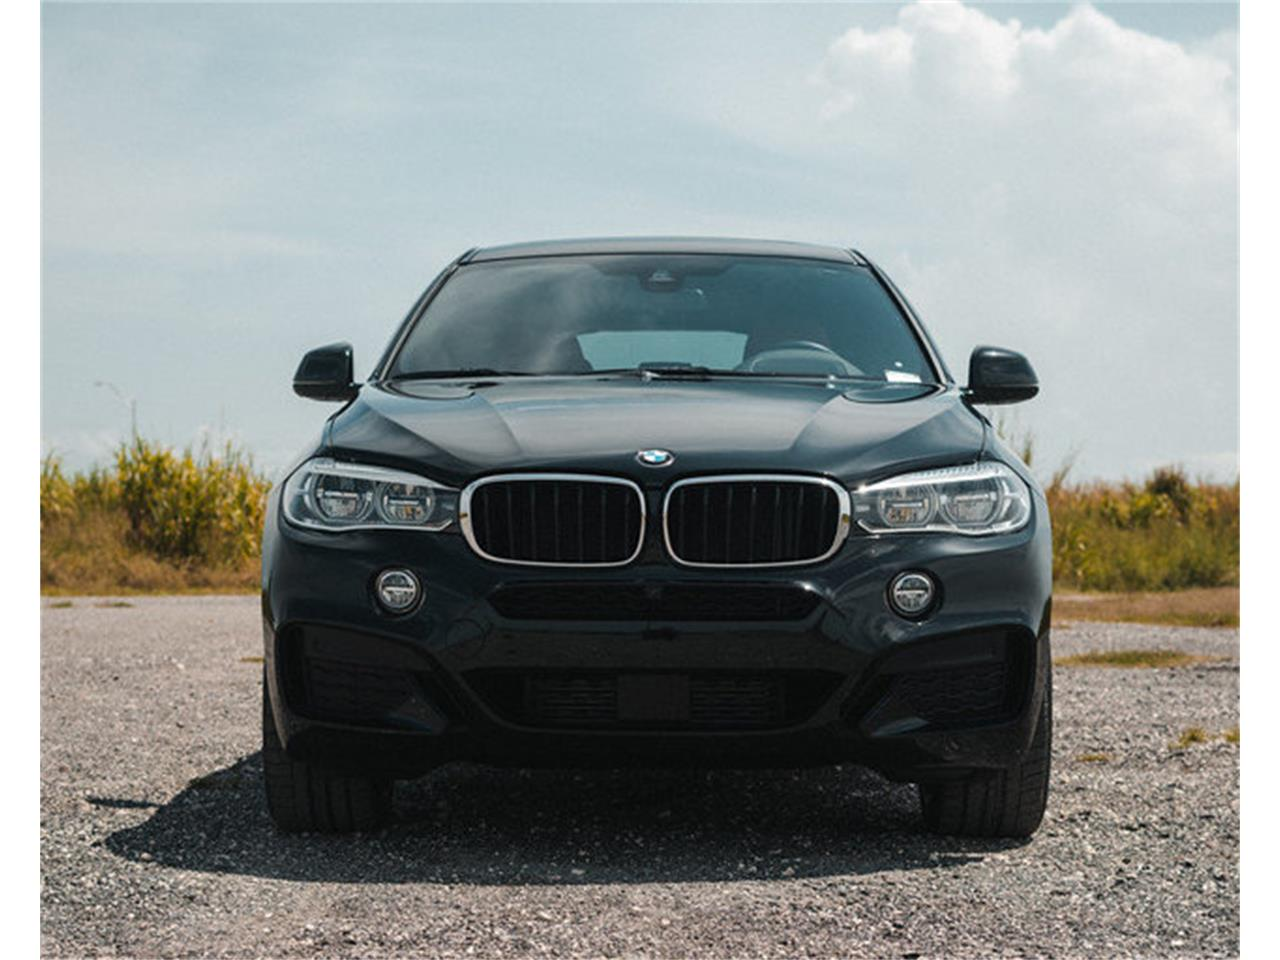 Large Picture of 2018 BMW X6 located in Miami Florida - $59,995.00 - QB2M